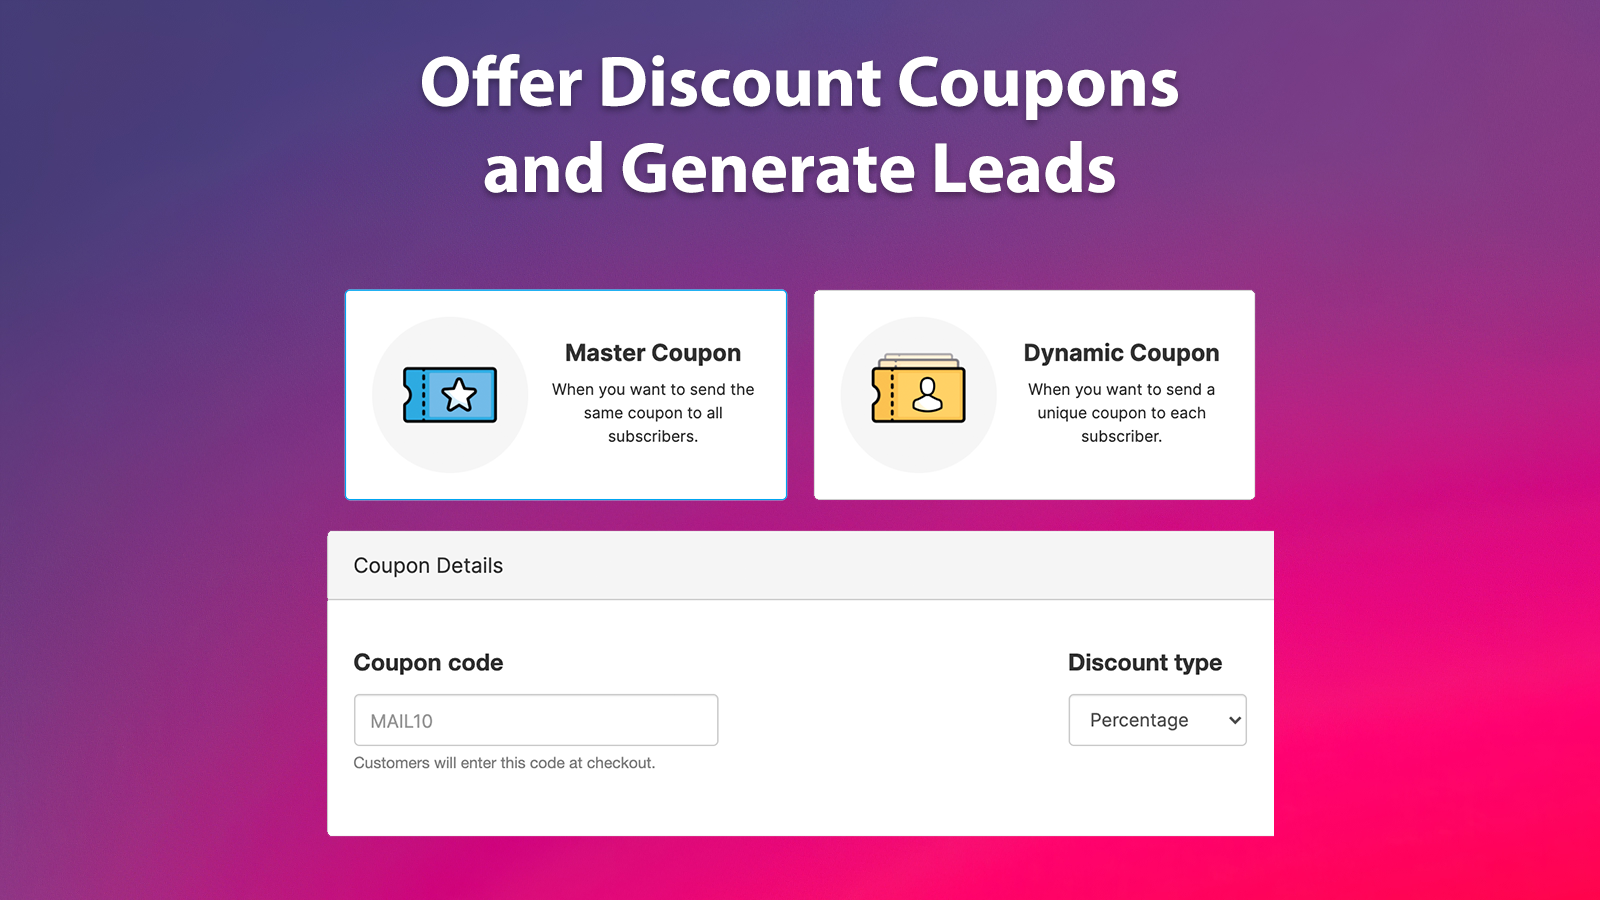 Discounts and Coupons